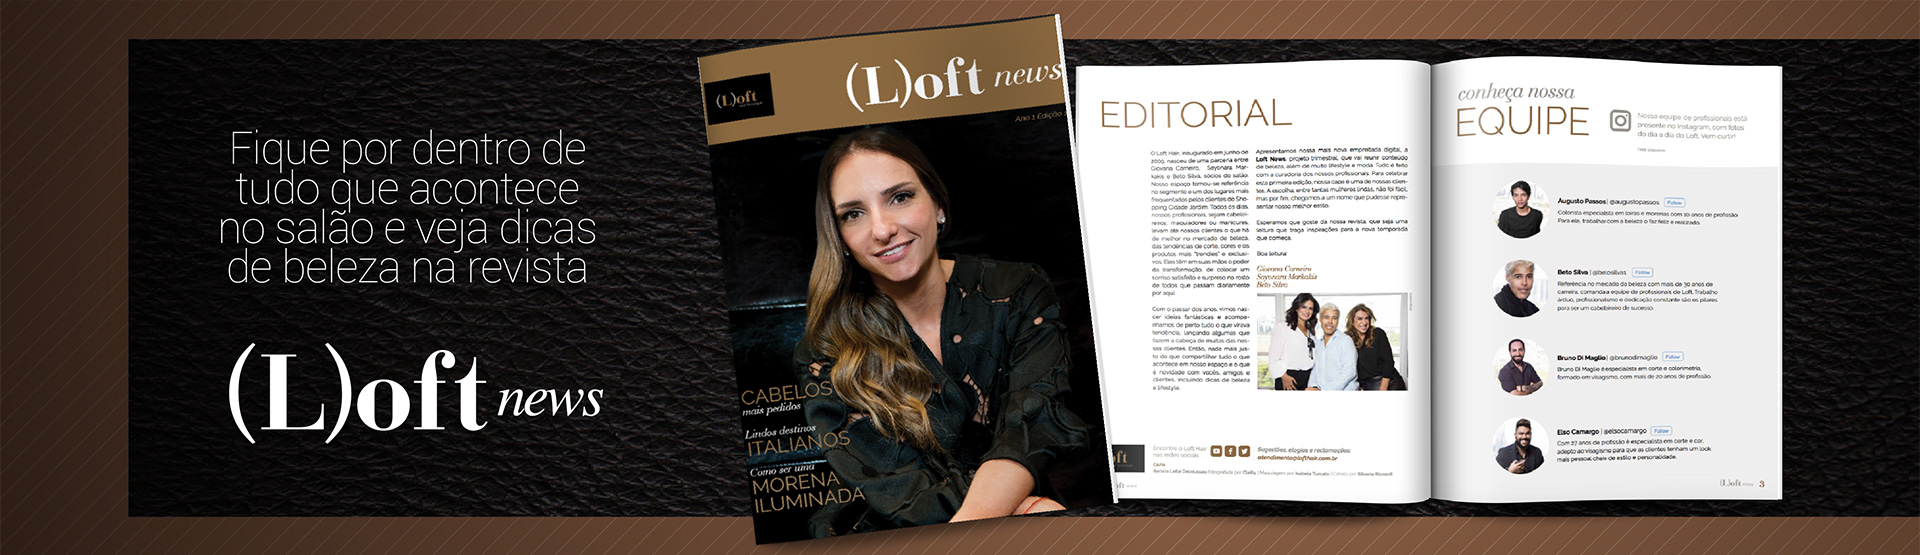 download revista loft news gratis